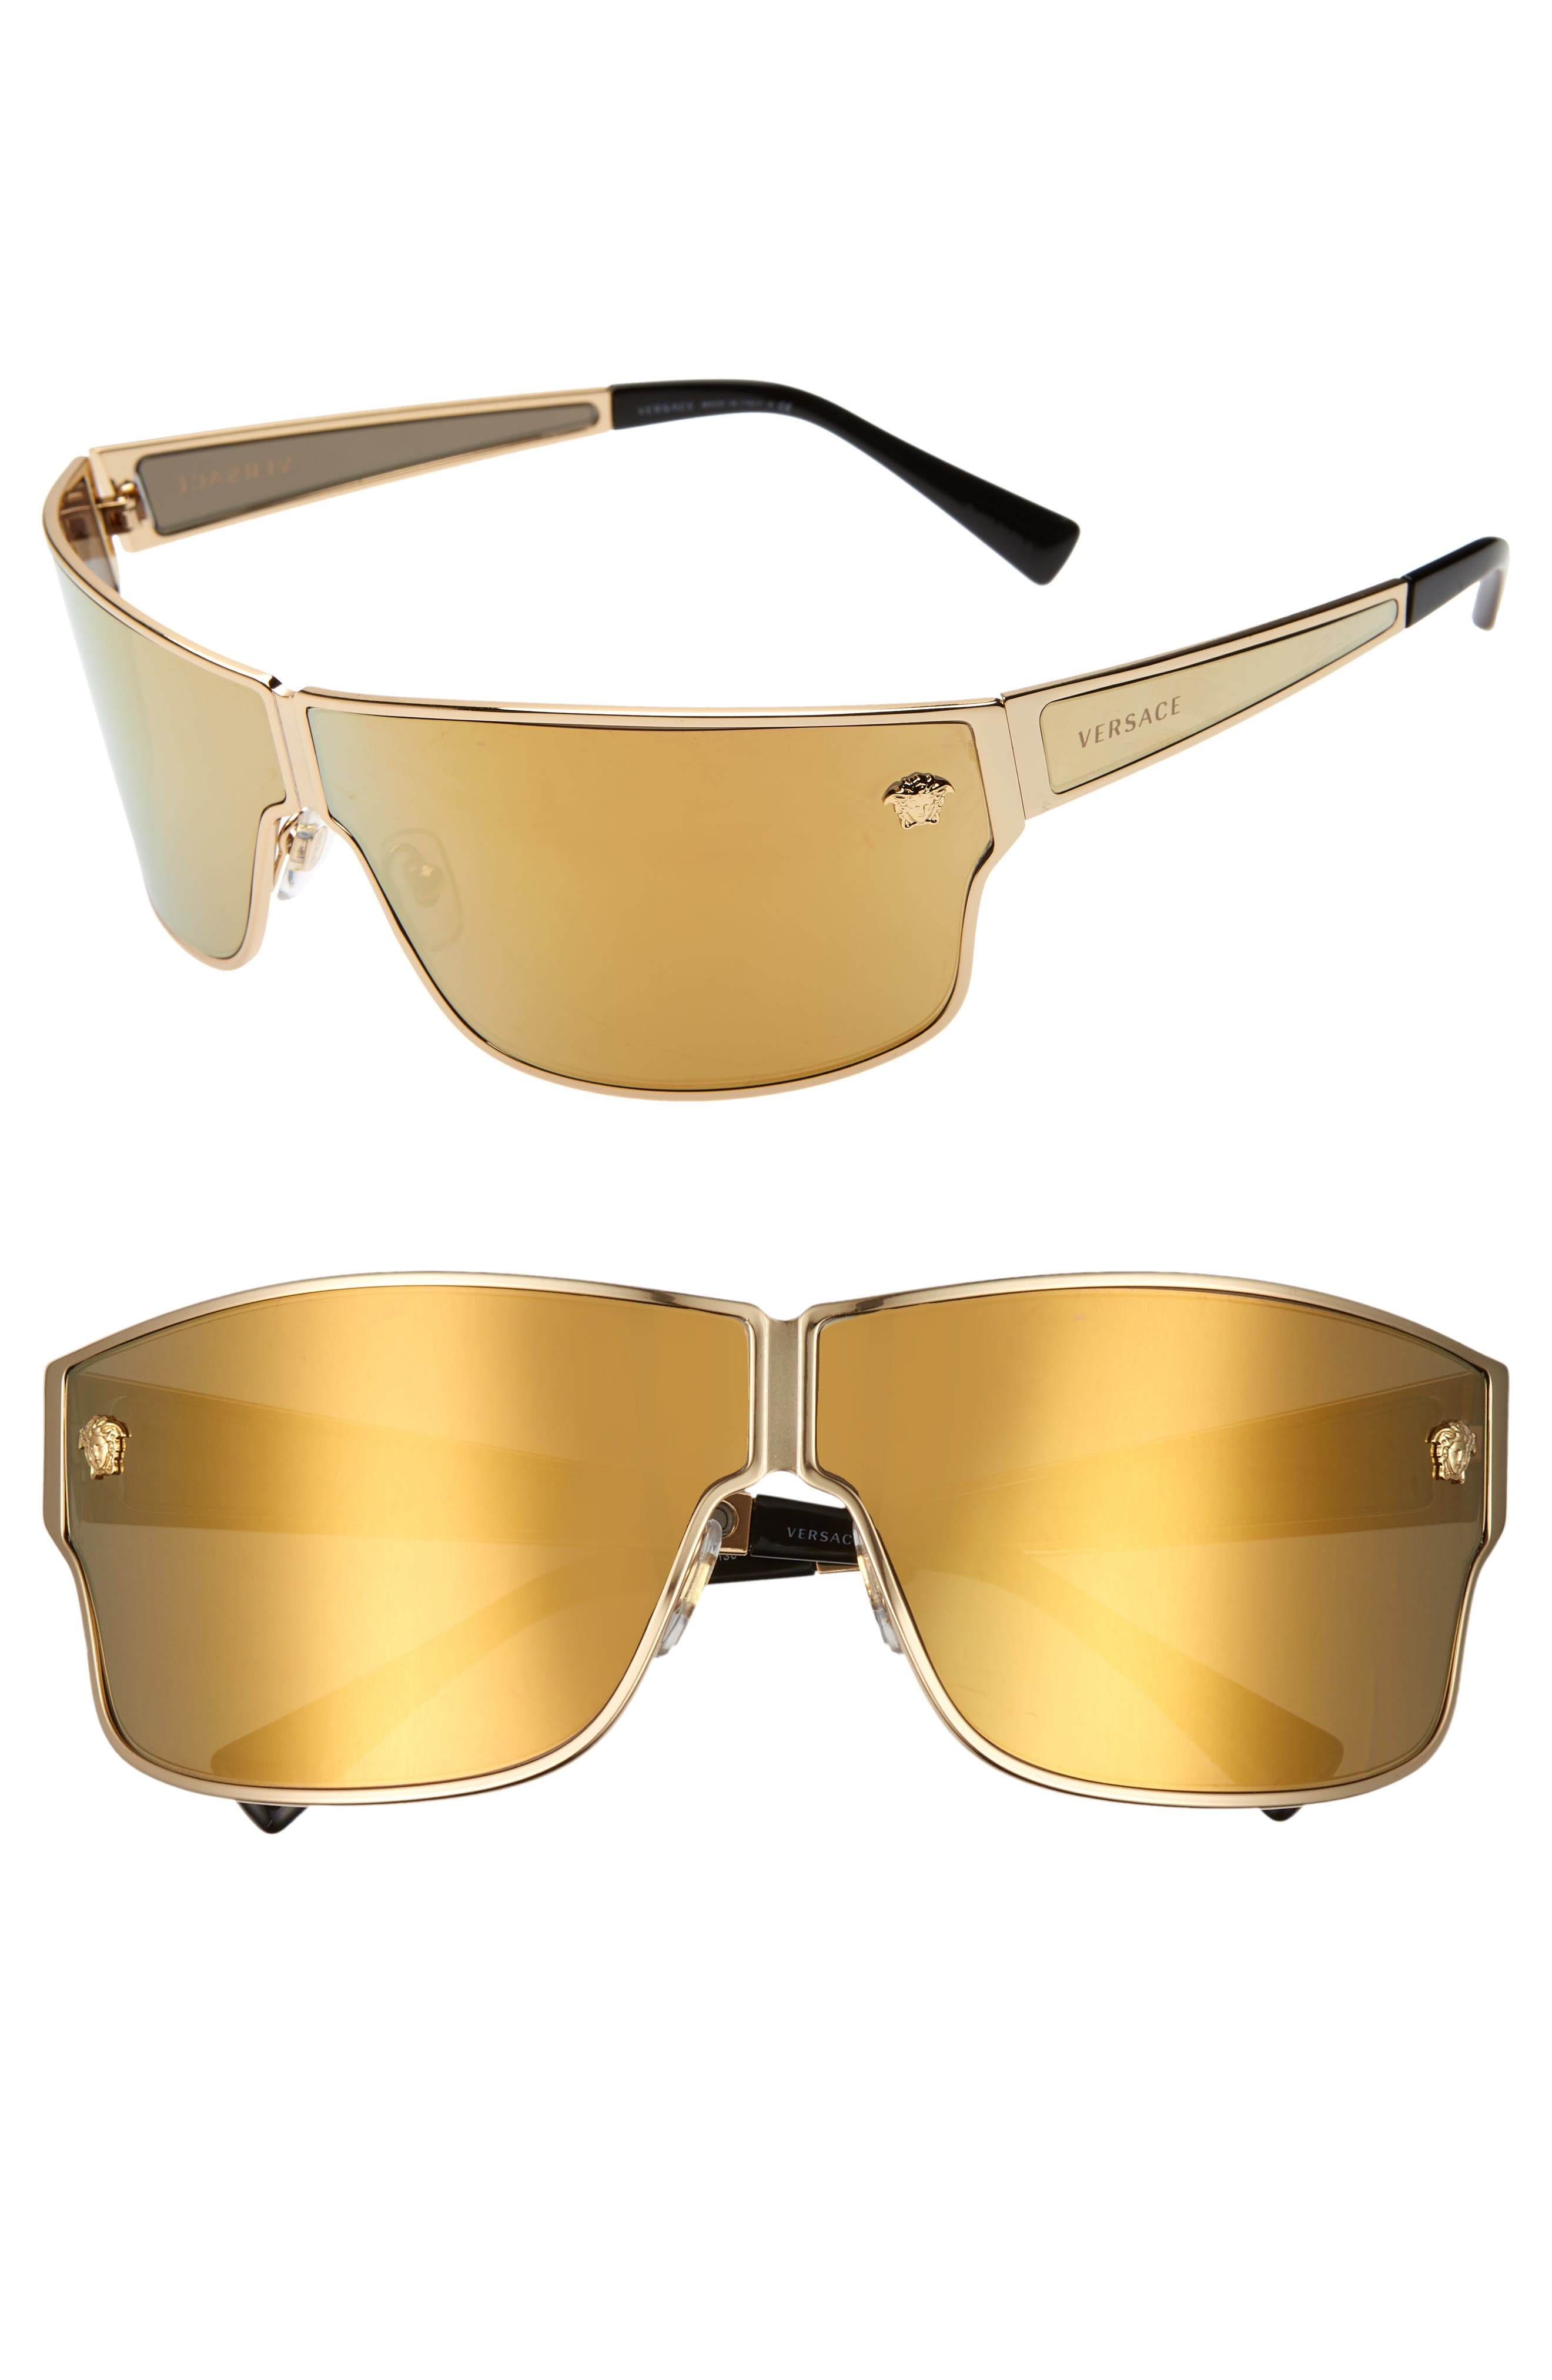 Medusa 72mm Mirrored Shield Sunglasses,                             Main thumbnail 1, color,                             GOLD/ GOLD MIRROR